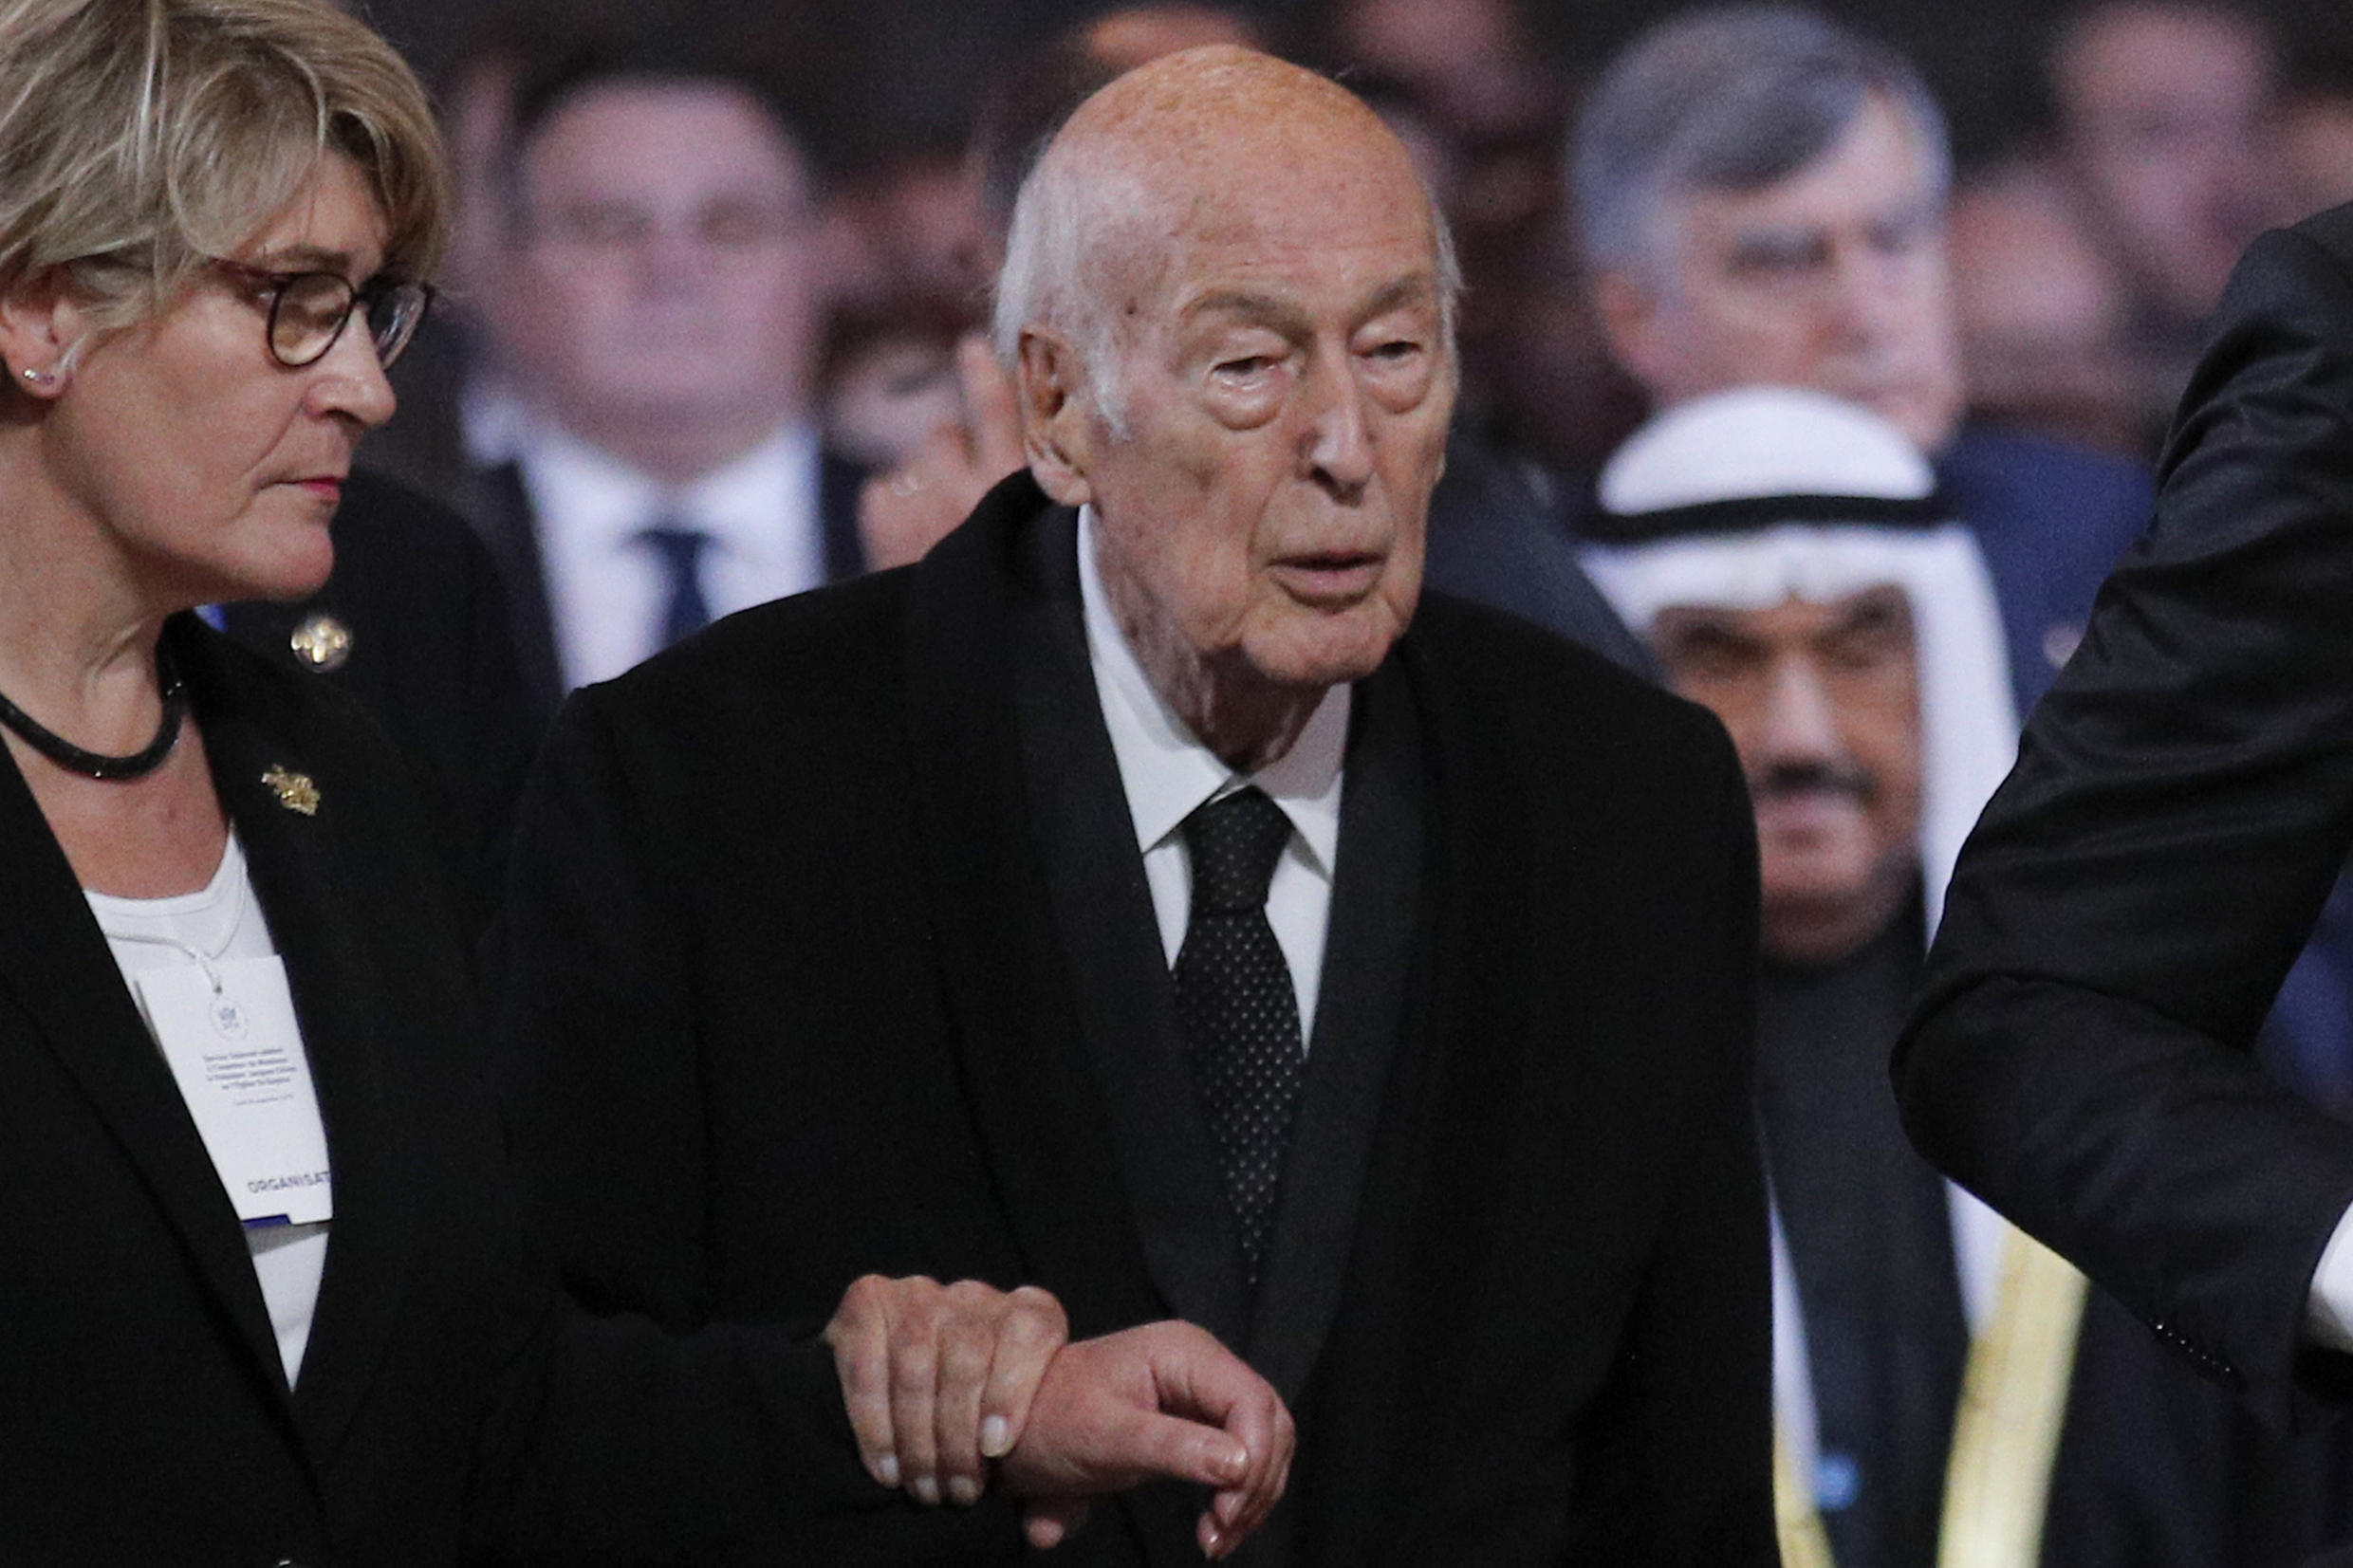 Former French president Valery Giscard d'Estaing, pictured last year, has been accused of sexual assaulting a reporter in 2018